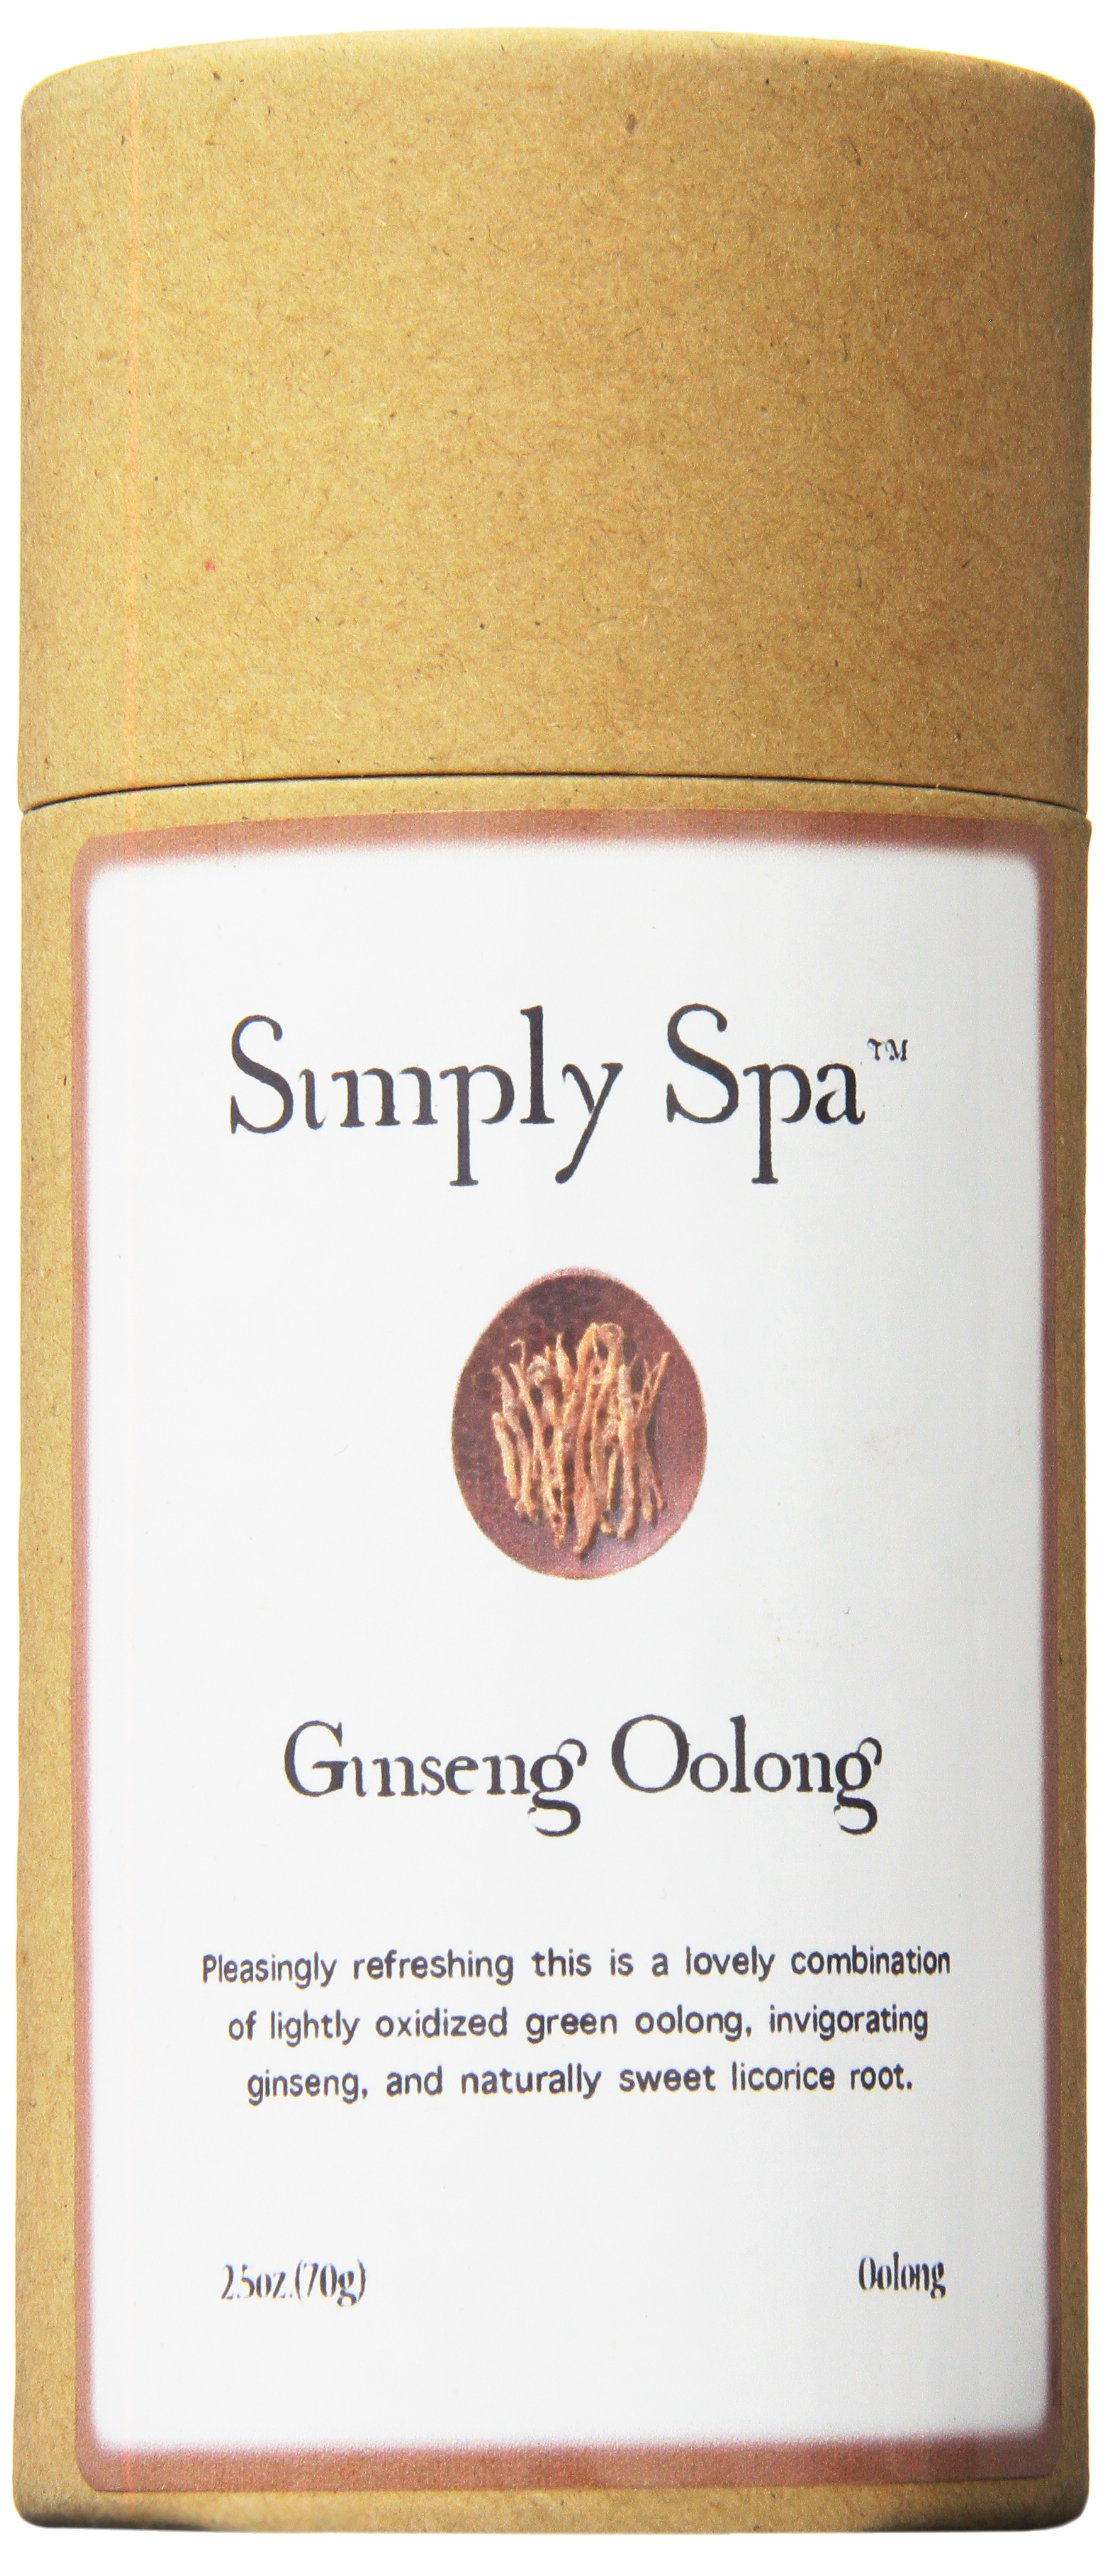 Simply Spa Ginseng Oolong Tea, 2.5 Ounce